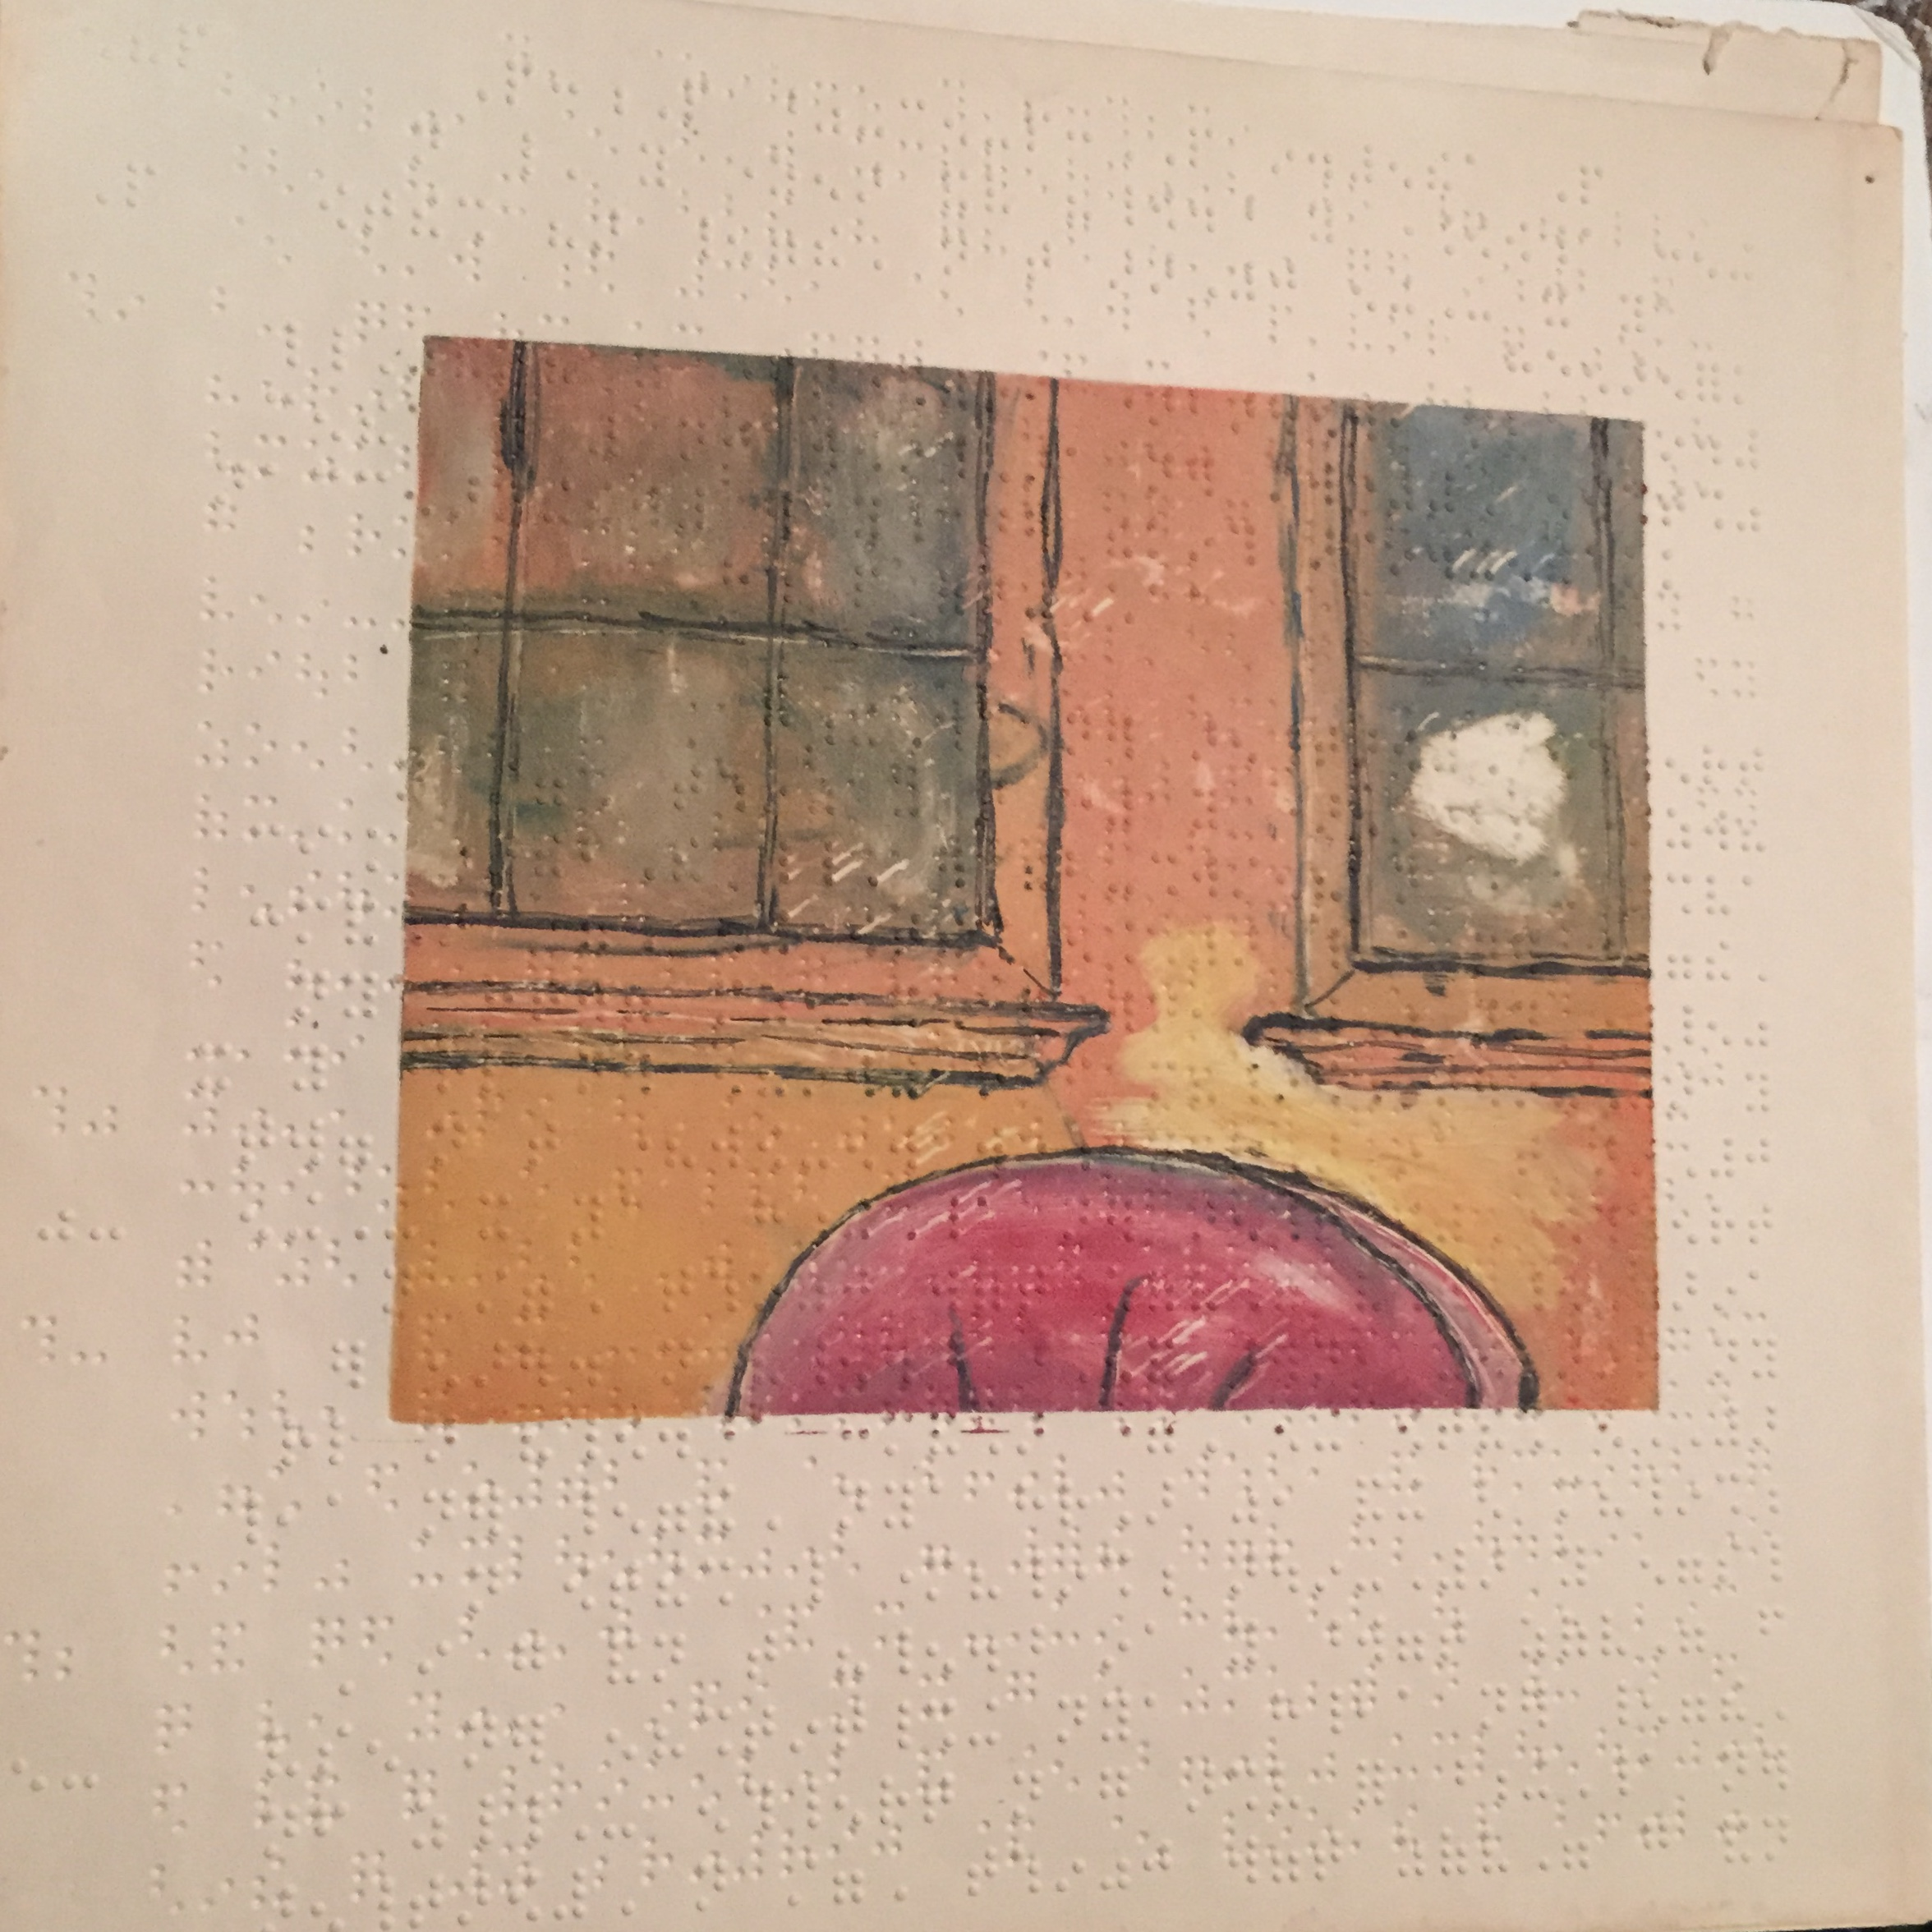 $100 - Everyday things outfitted proper just as I remember (window). Monoprint on Braille paper. 12